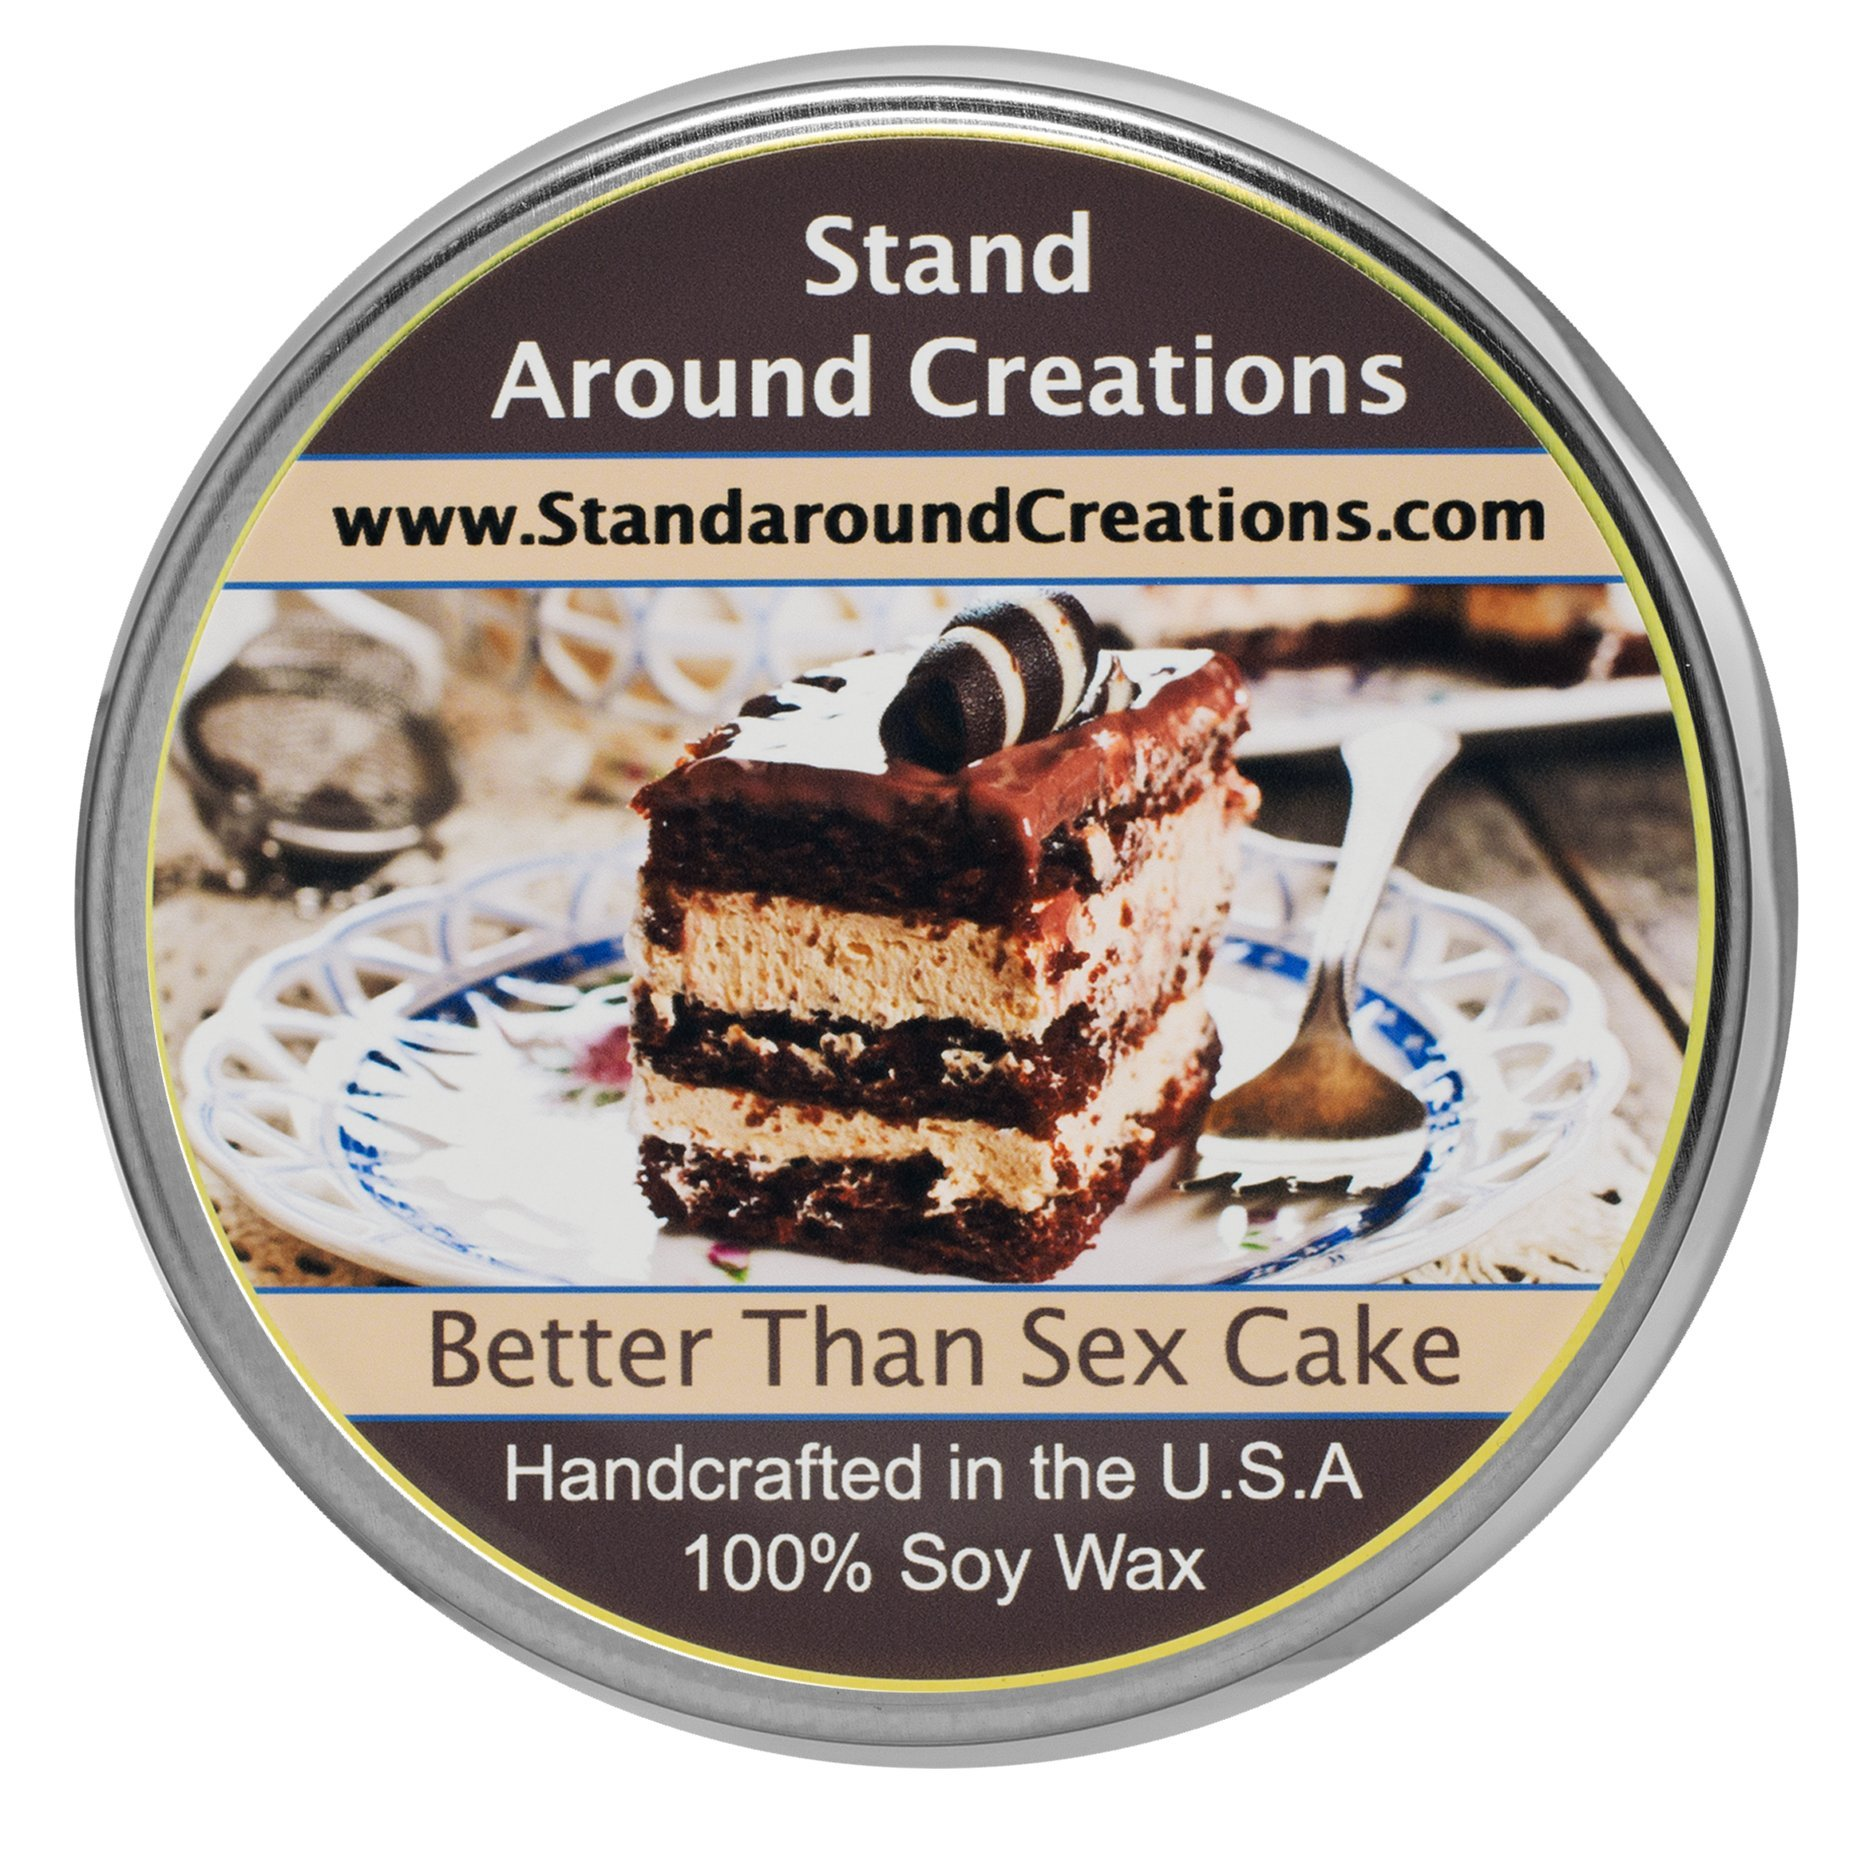 Premium 100% Soy Tureen Candle - 8 oz. - Better Than Sex Cake: German chocolate cake w/ chocolate chips w/ toffee bits. Vanilla creme and butterscotch syrup w/ hints of almond w/ coconut.